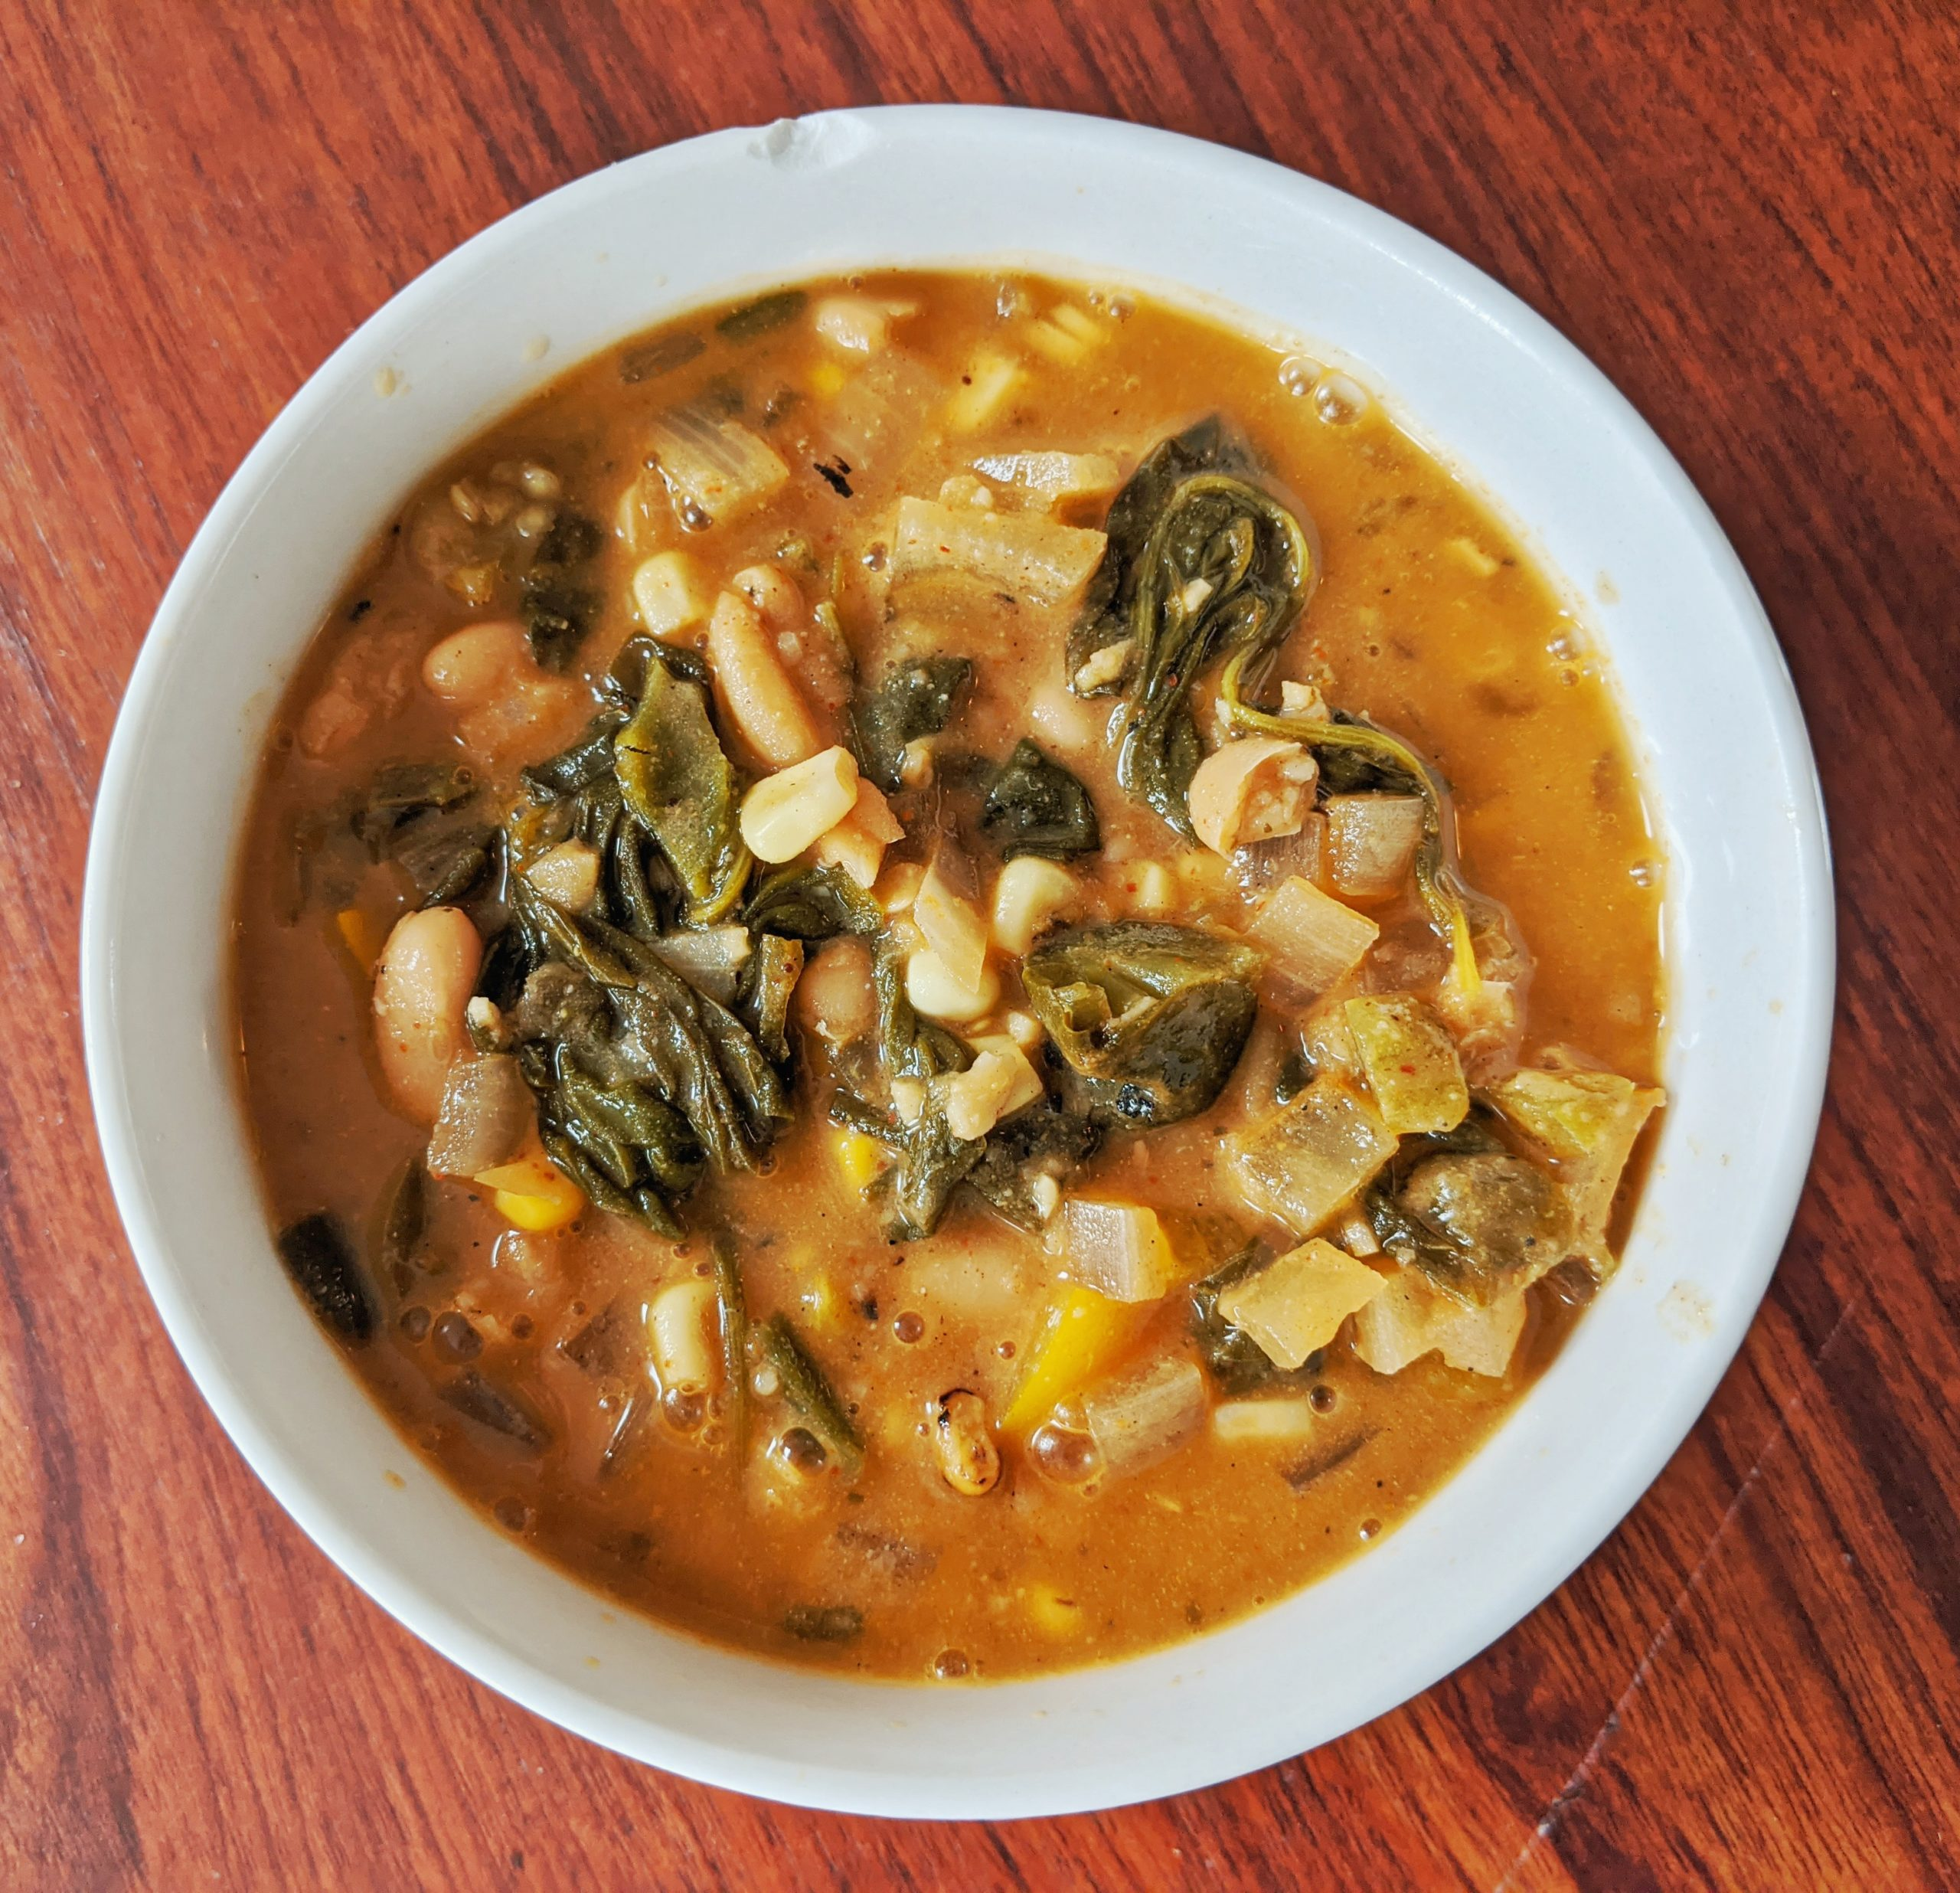 Roasted Poblano Pepper and White Bean Chili